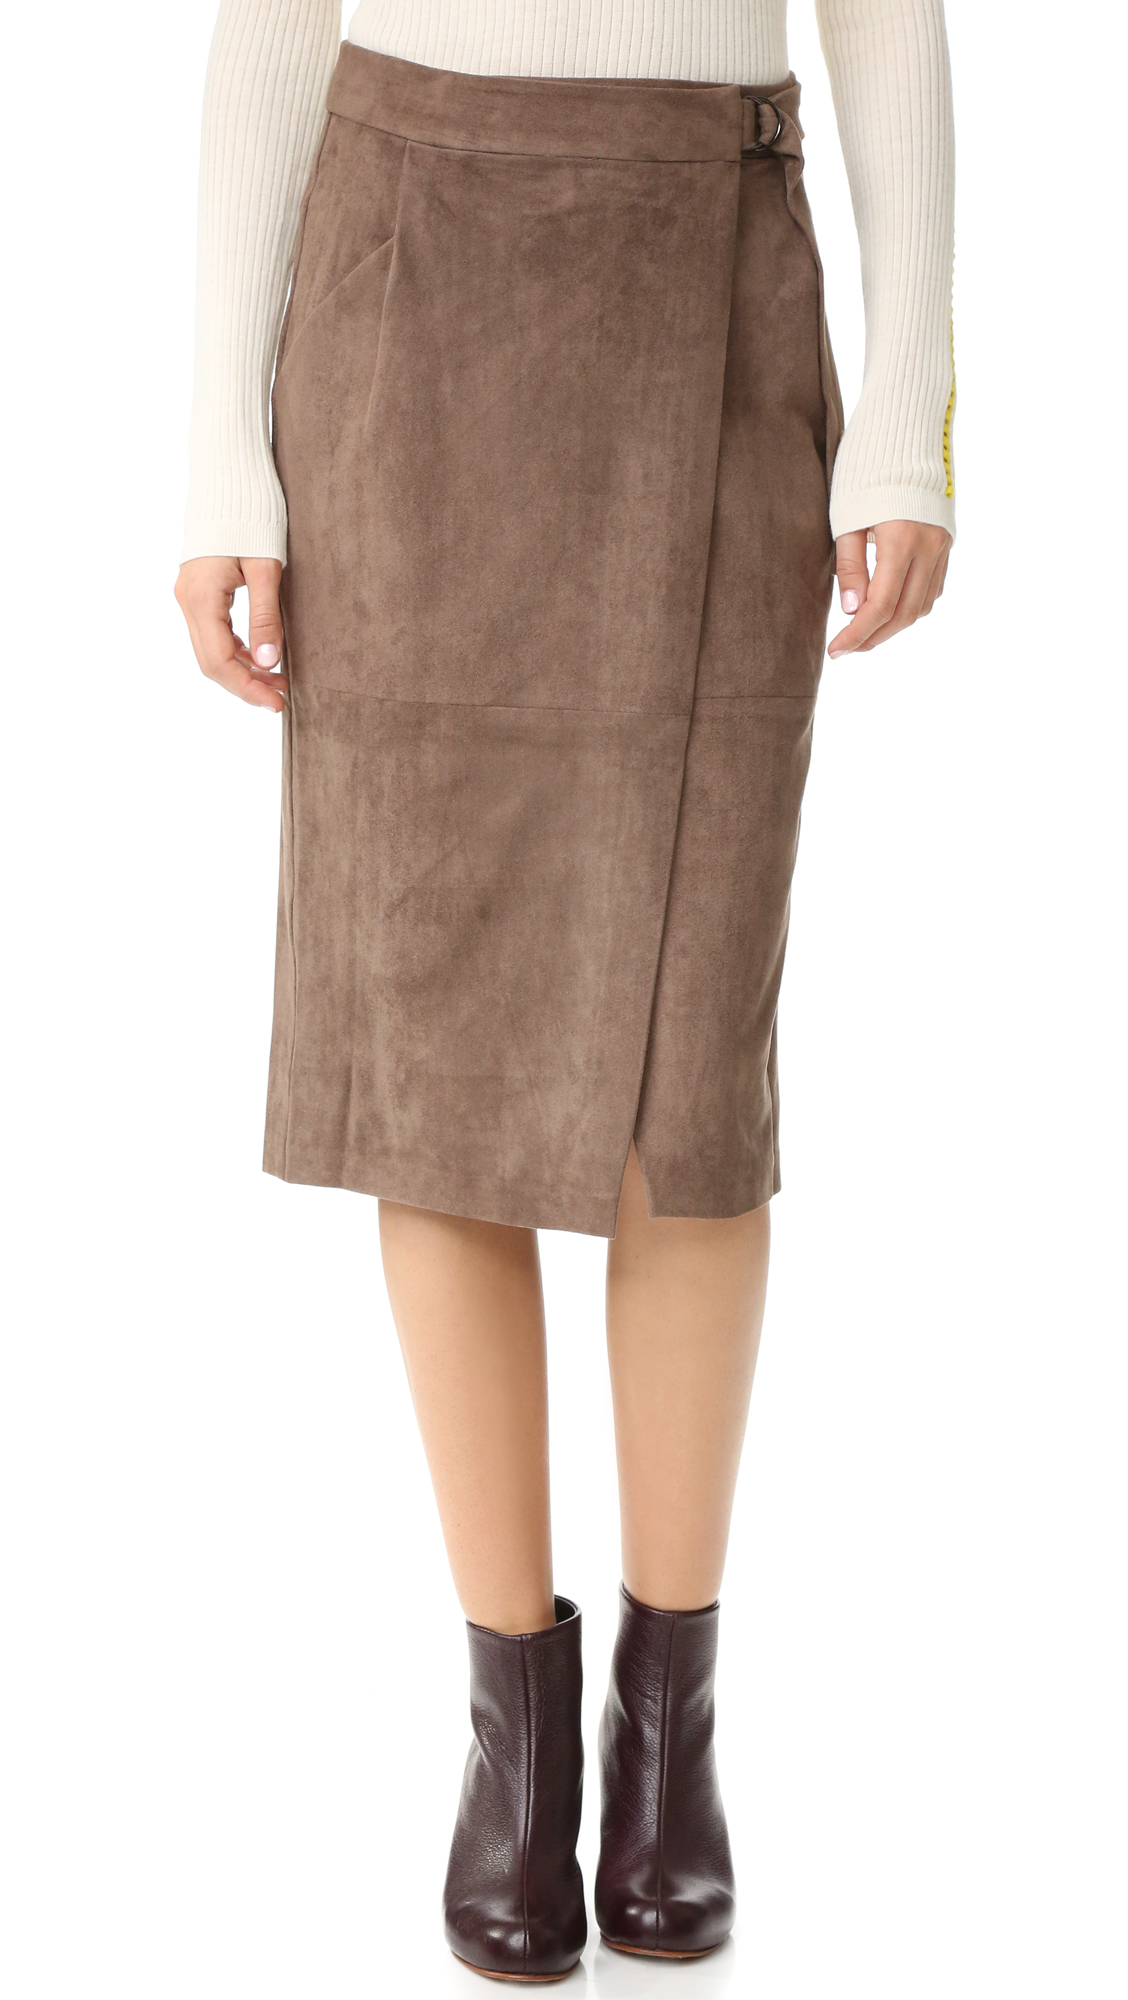 And B Ring Buckle Midi Skirt - Taupe at Shopbop